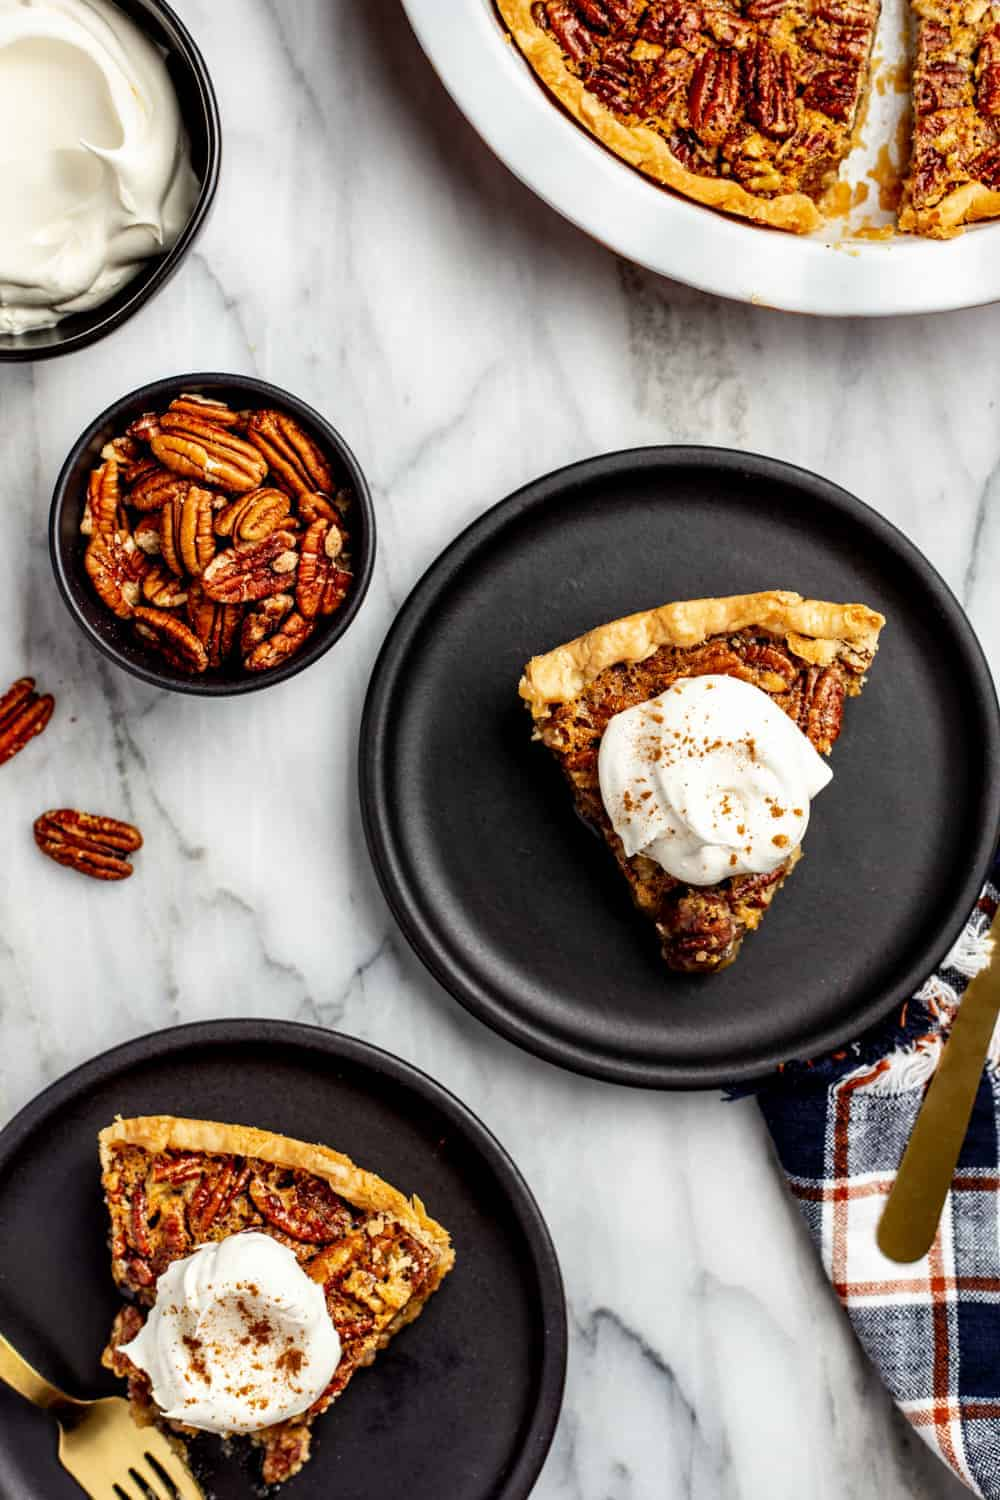 Overhead view of several plated pieces of classic pecan pie, topped with whipped cream